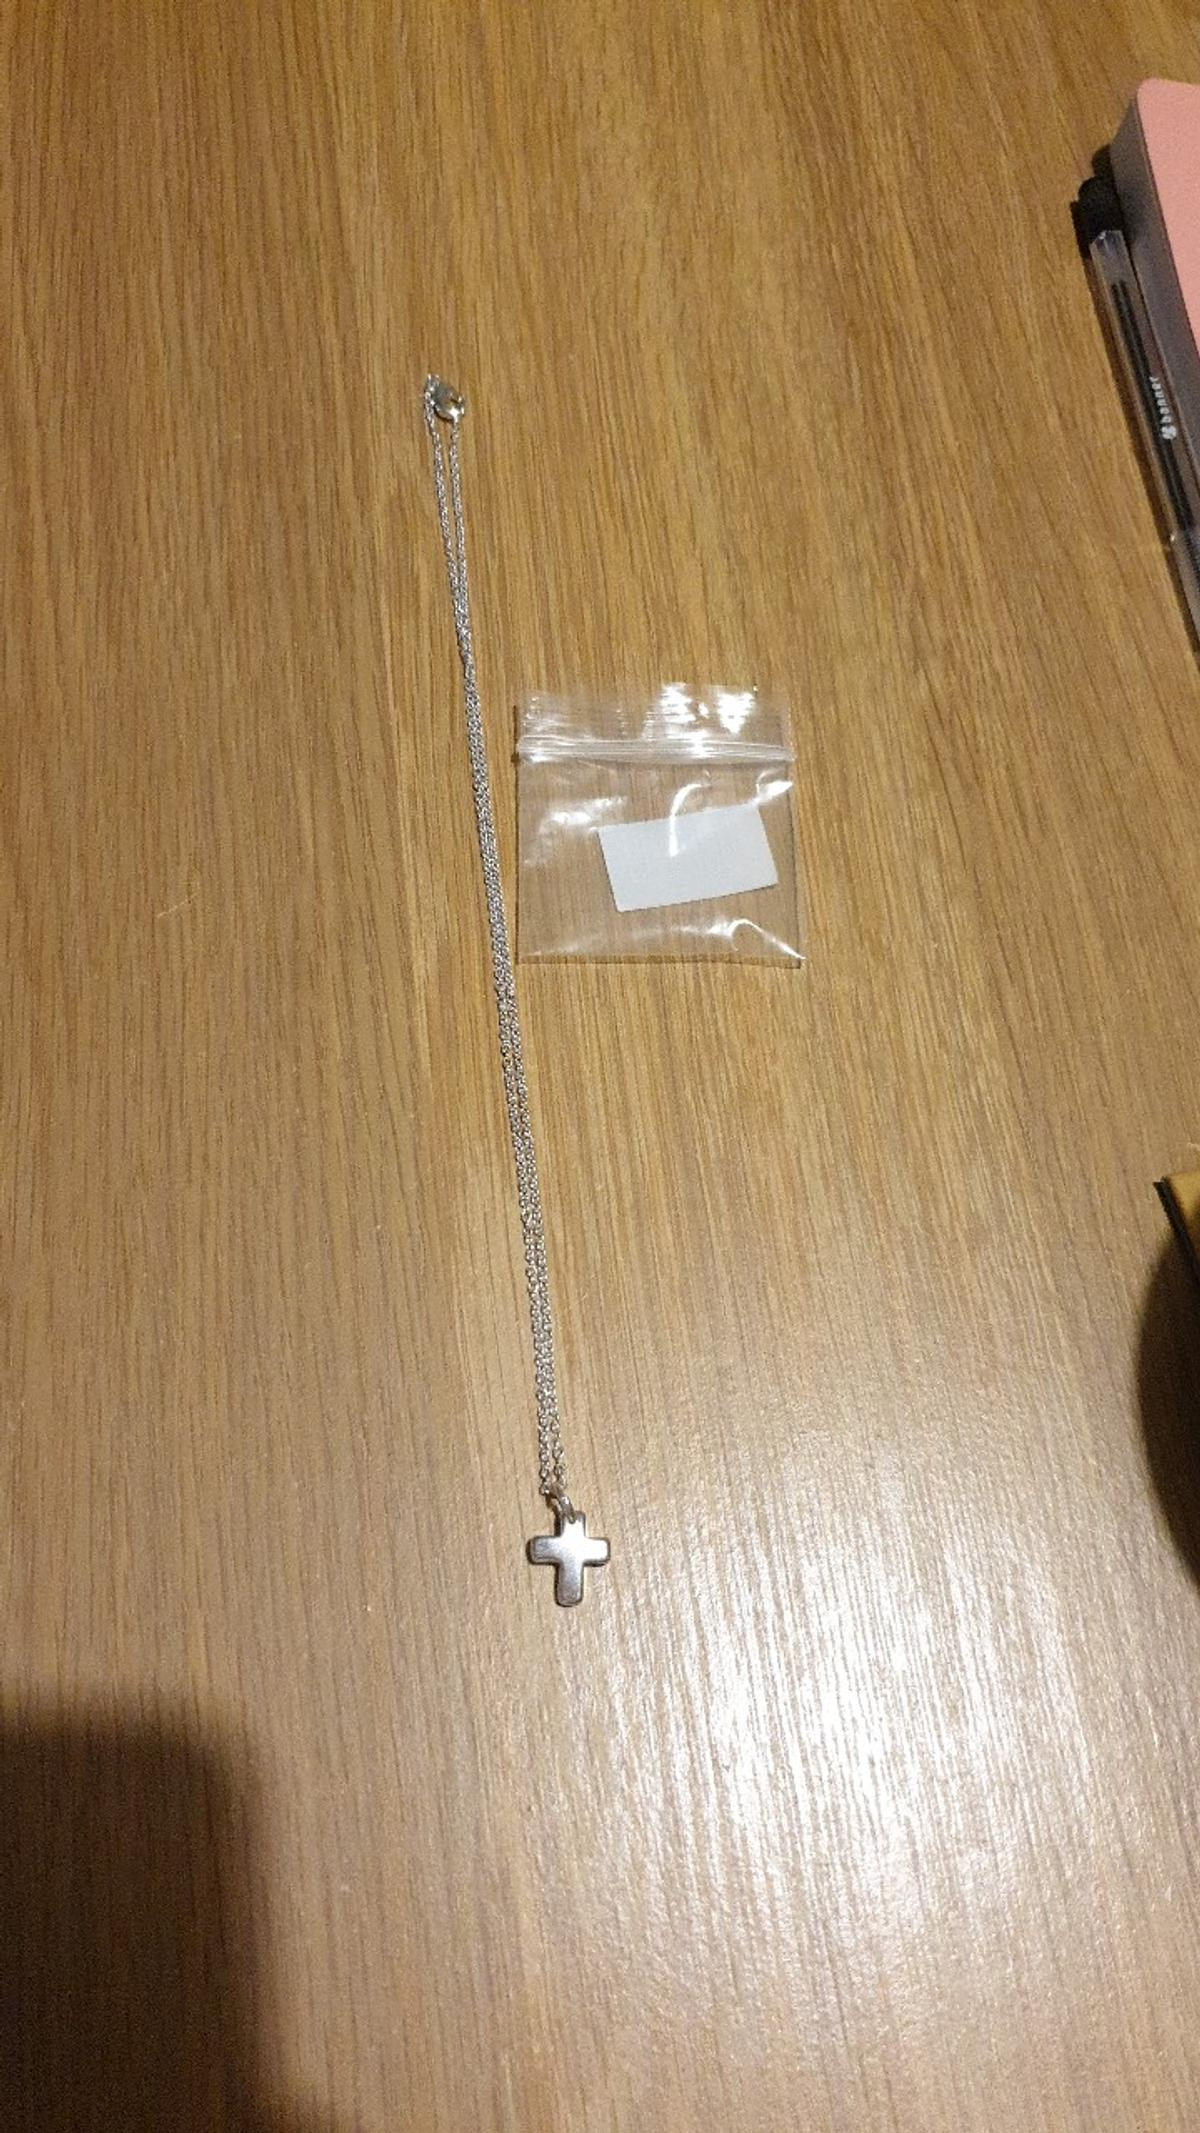 new never used necklace